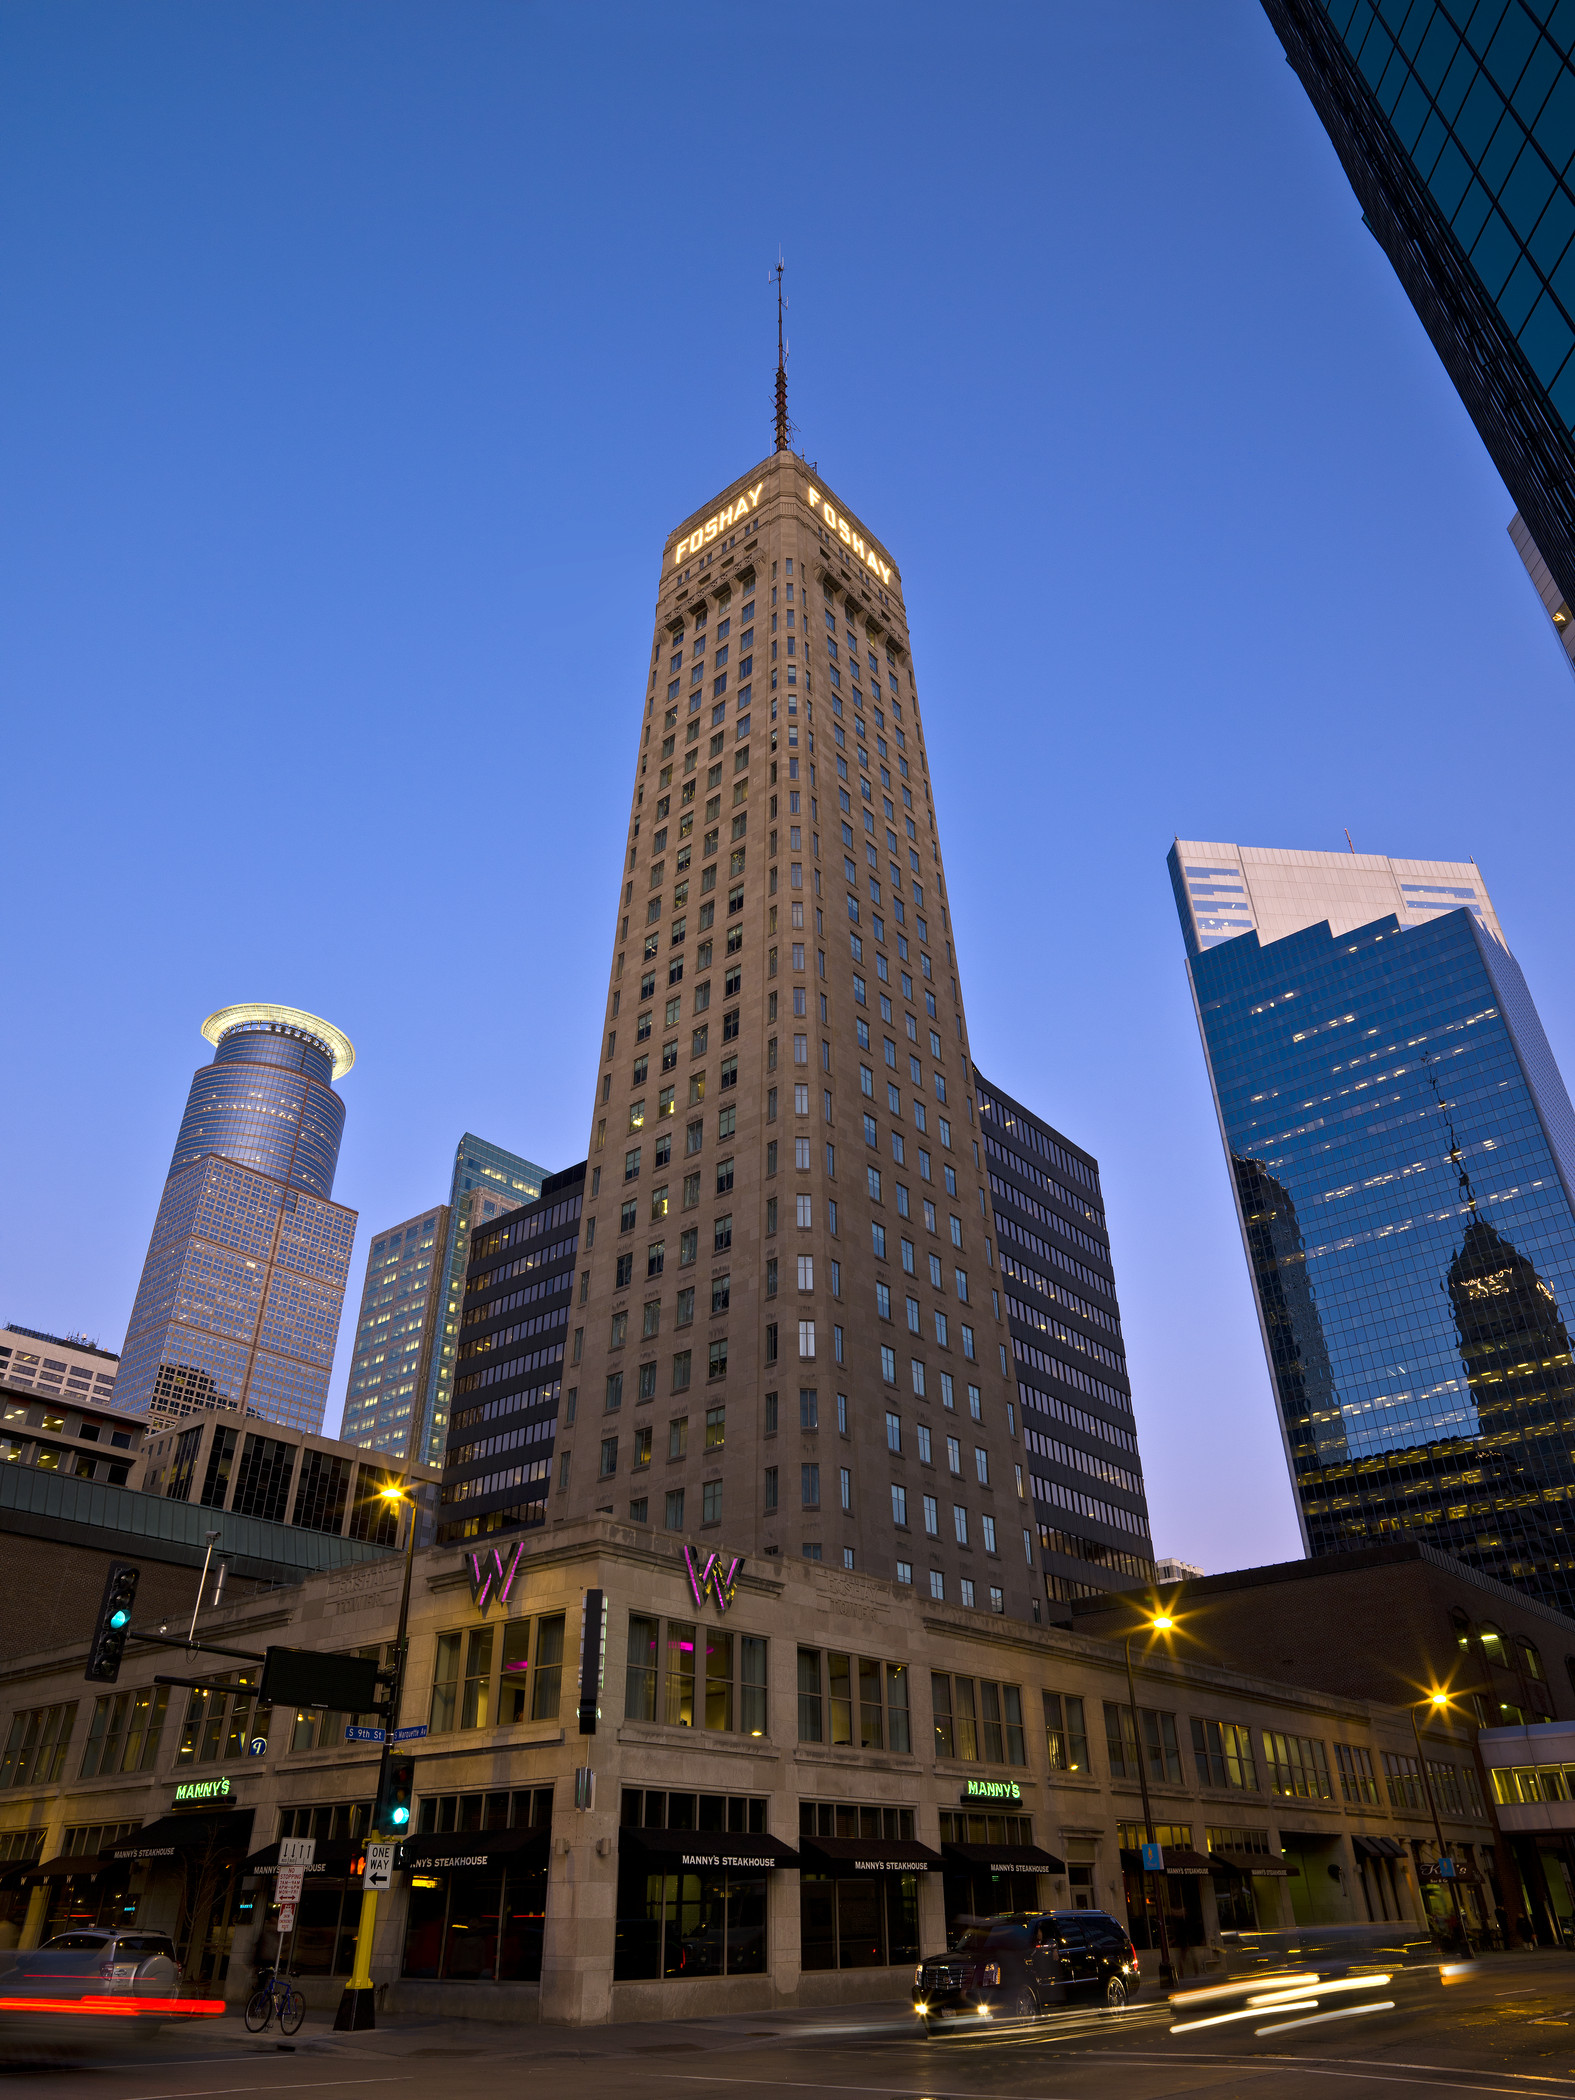 W Minneapolis/ Foshay Tower - Built in 1929, the Foshay Tower was the first to surpass the height of Minneapolis City Hall, and remained the tallest building in Minneapolis until the IDS Center opened in 1972. Visit the museum on the 29th floor and chat with staff to learn more about the building's history.